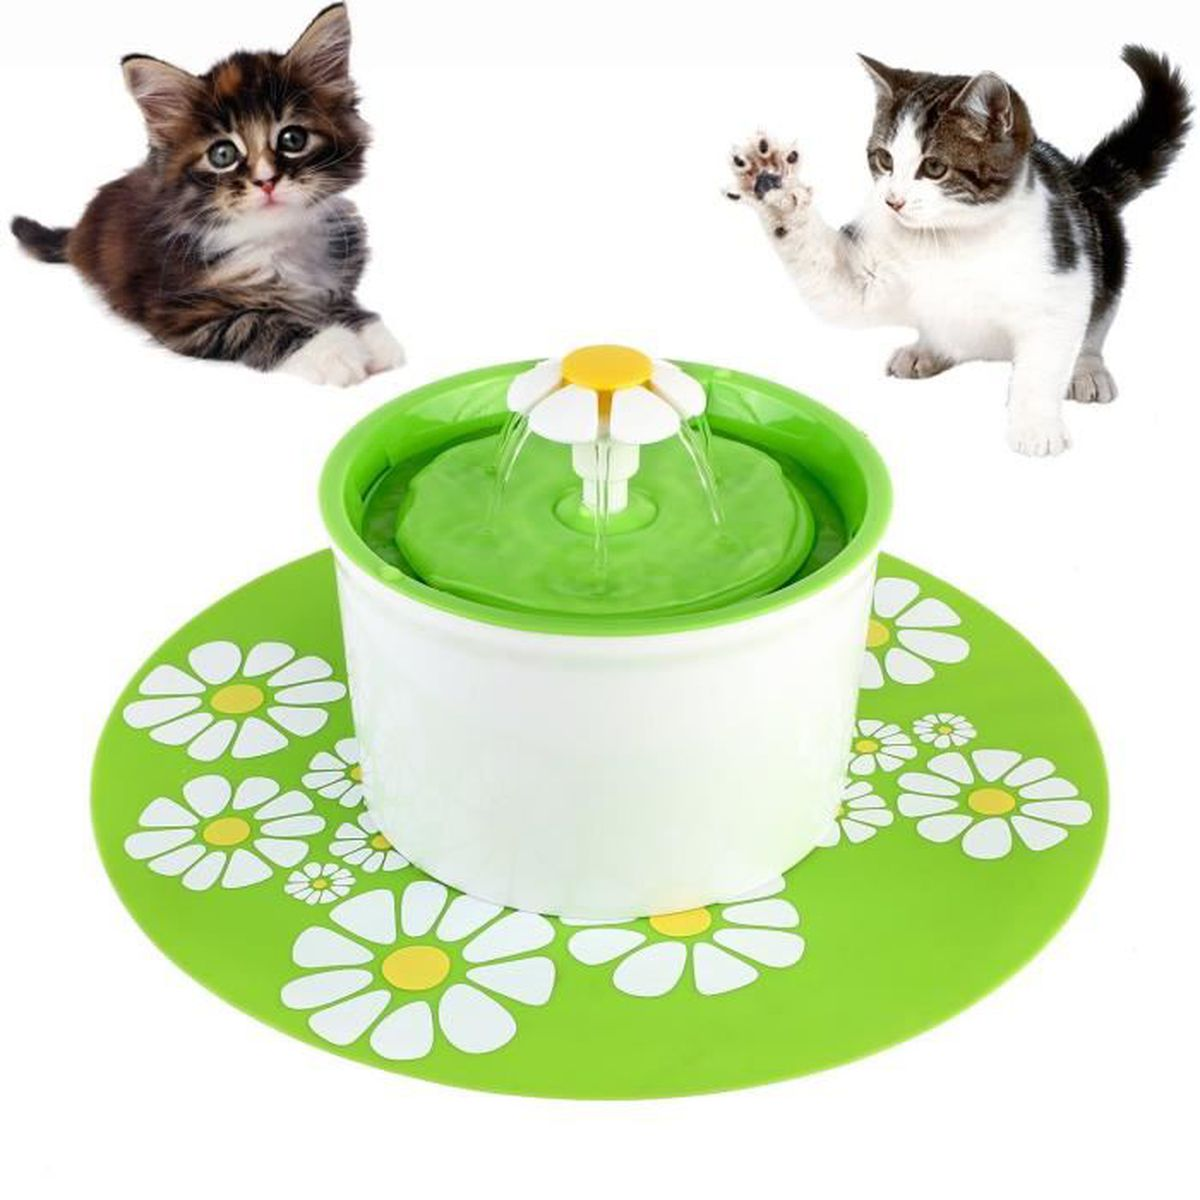 Fontaine à Fleur Pour Chat Automatic Electric Flower 1.6 L Distributeur Eau Vert Pet Supplies